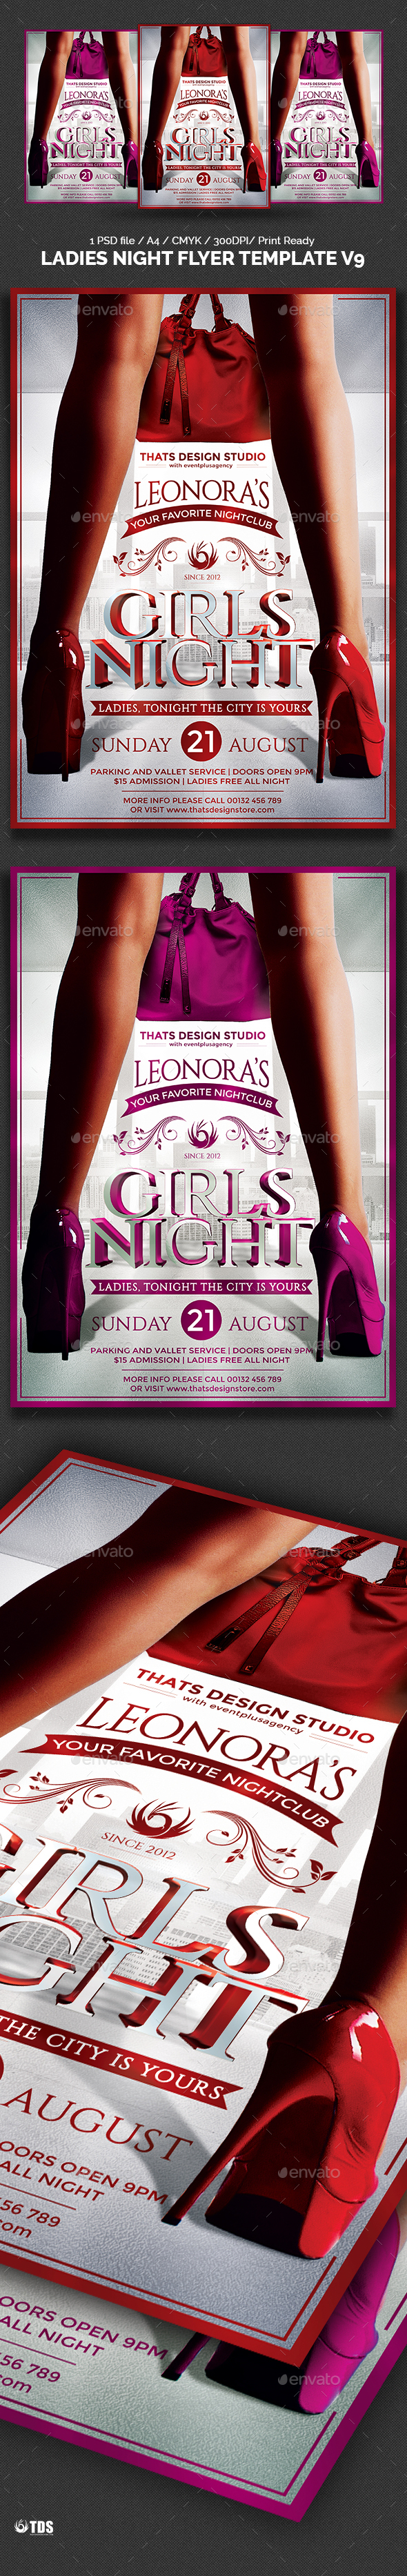 Ladies Night Flyer Template V9 - Clubs & Parties Events